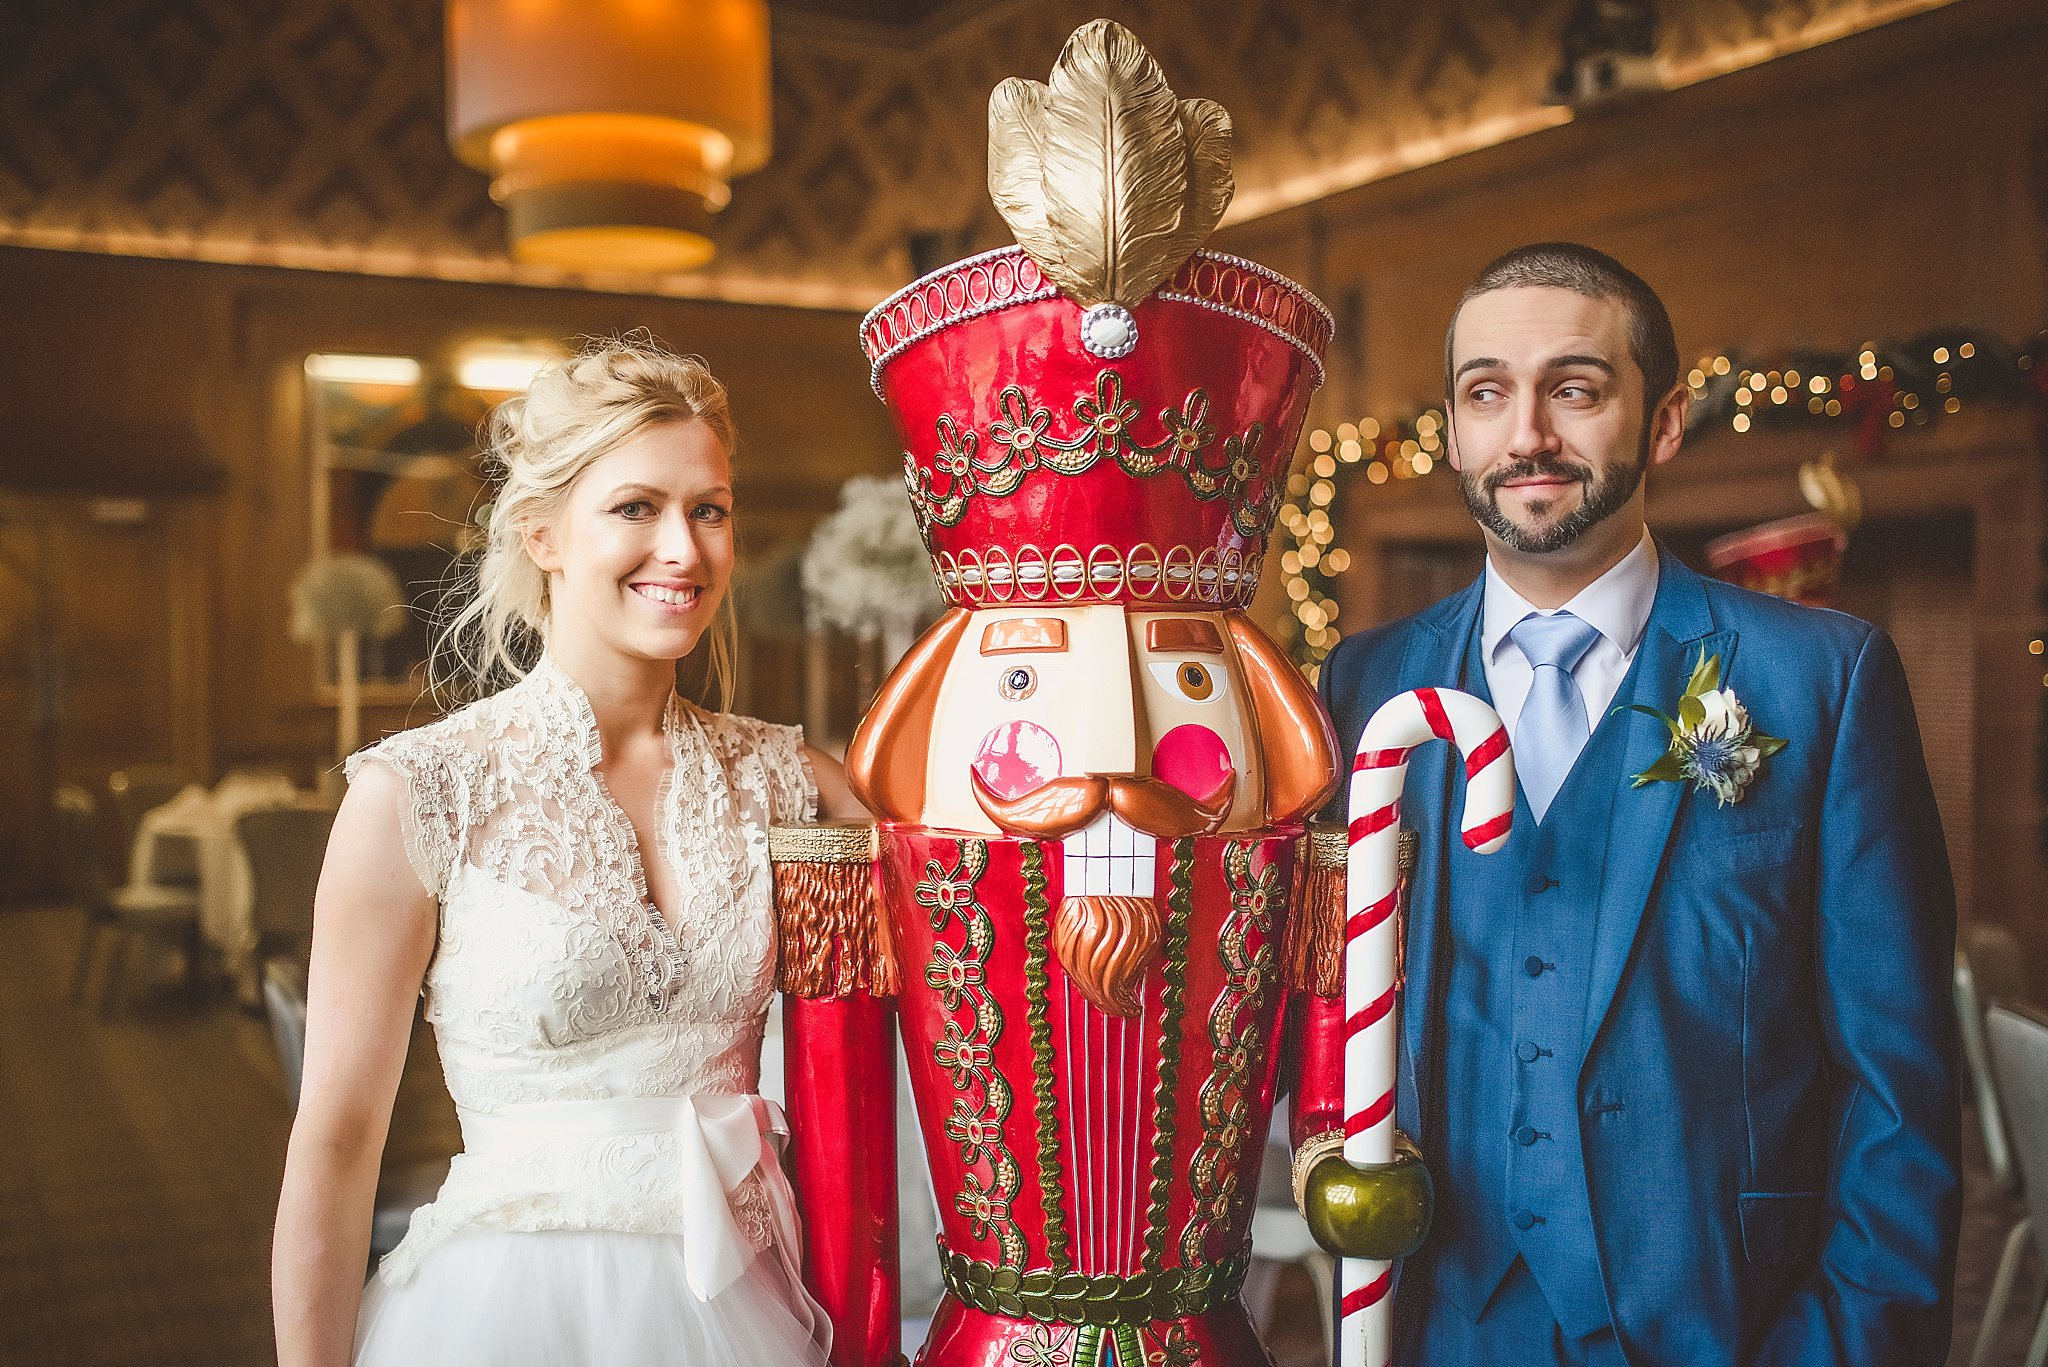 Bride and groom next to giant nutcracker